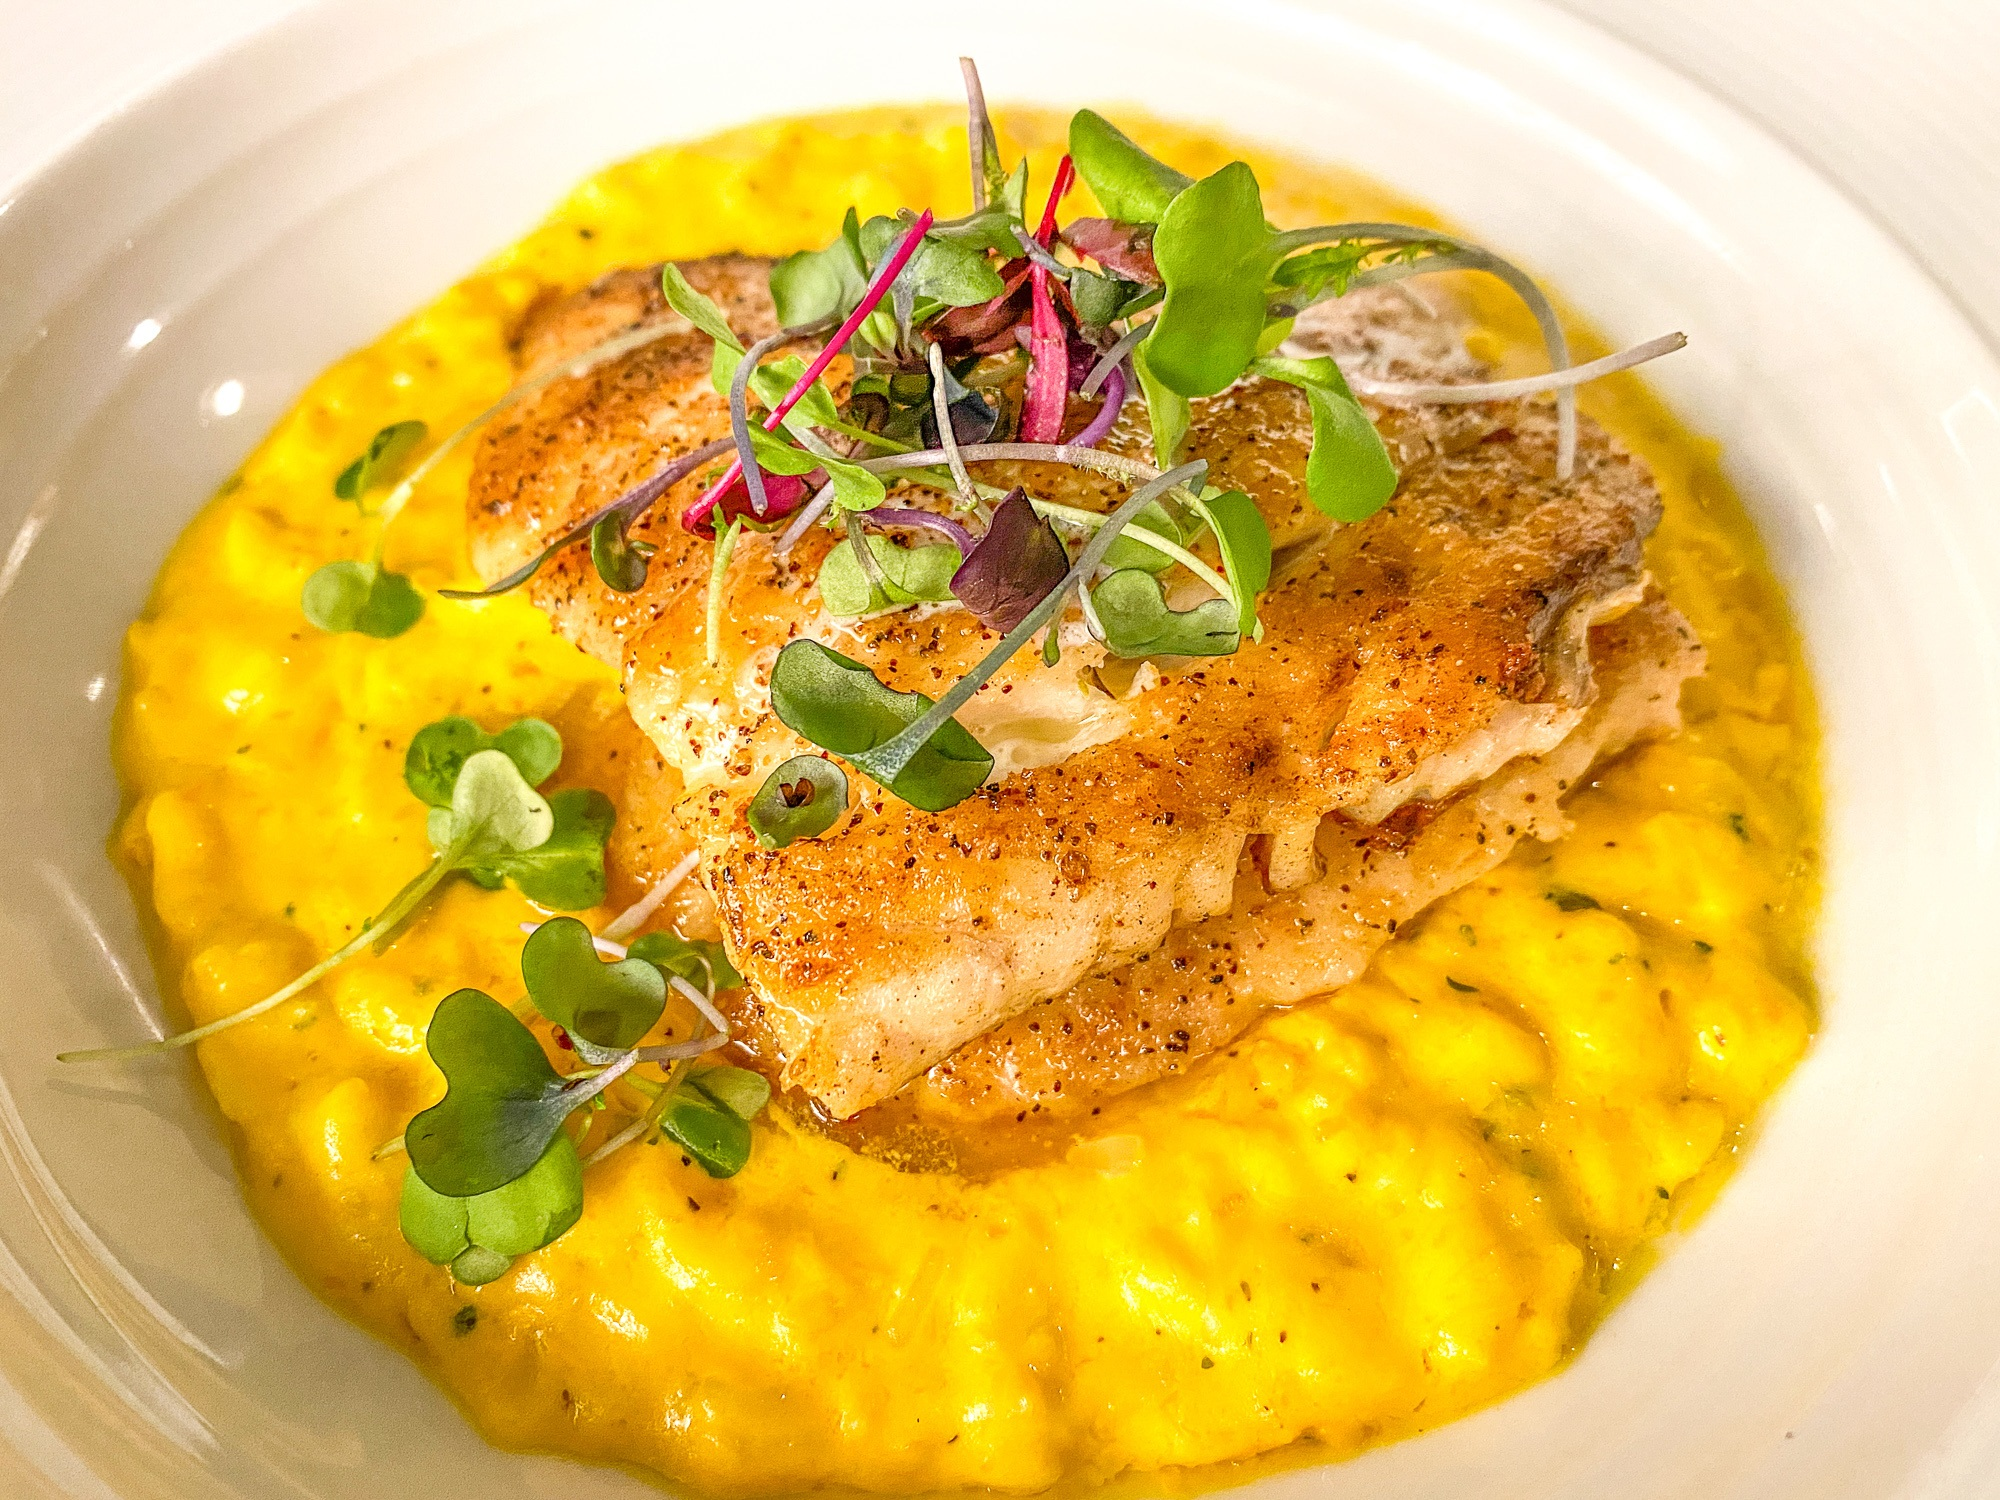 Fish of the Day served with butternut squash risotto at Sixty-One Prime Restaurant in Duck Key, Florida